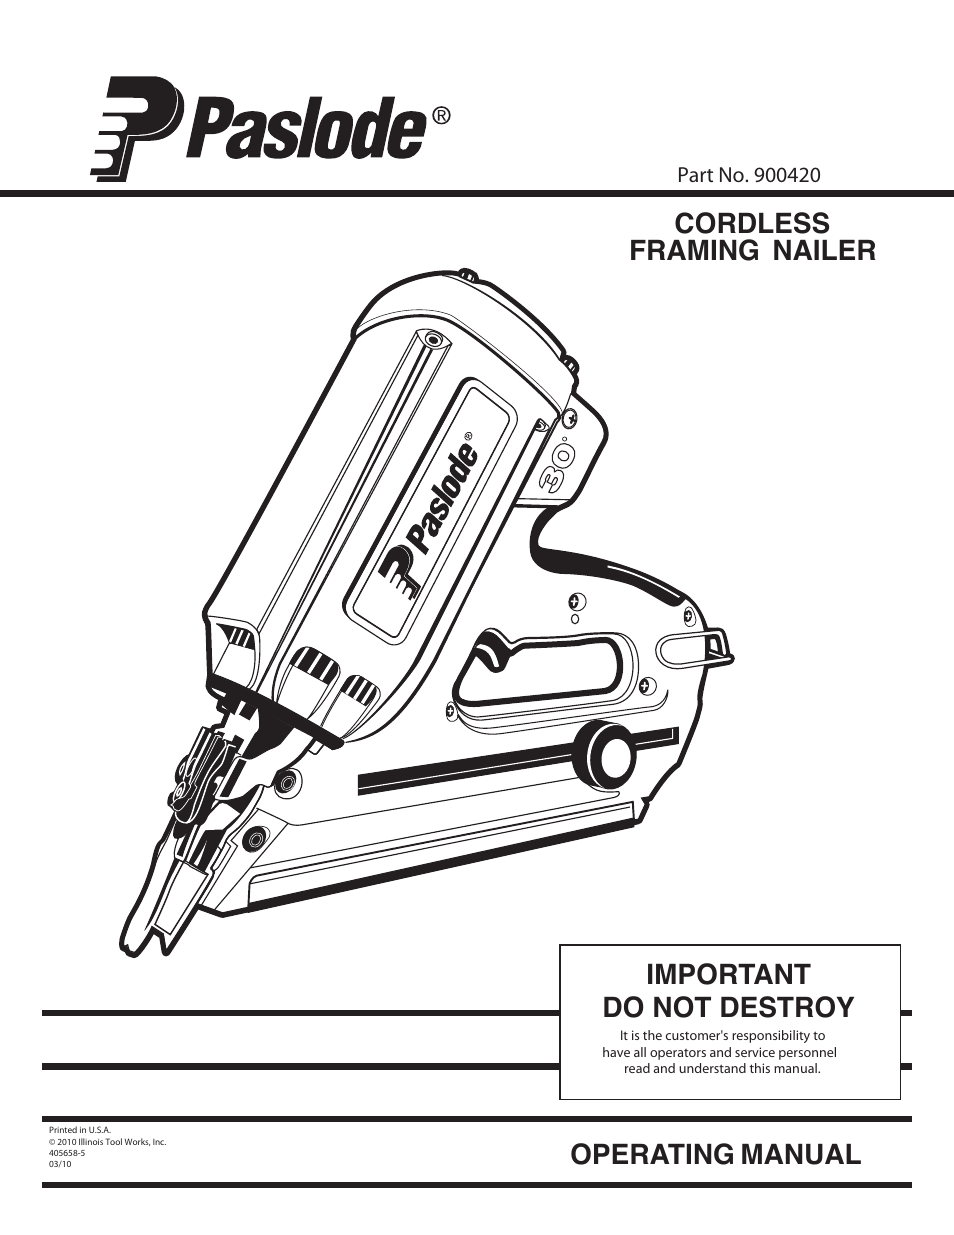 Paslode Imct Cordless Framing Nailer User Manual 20